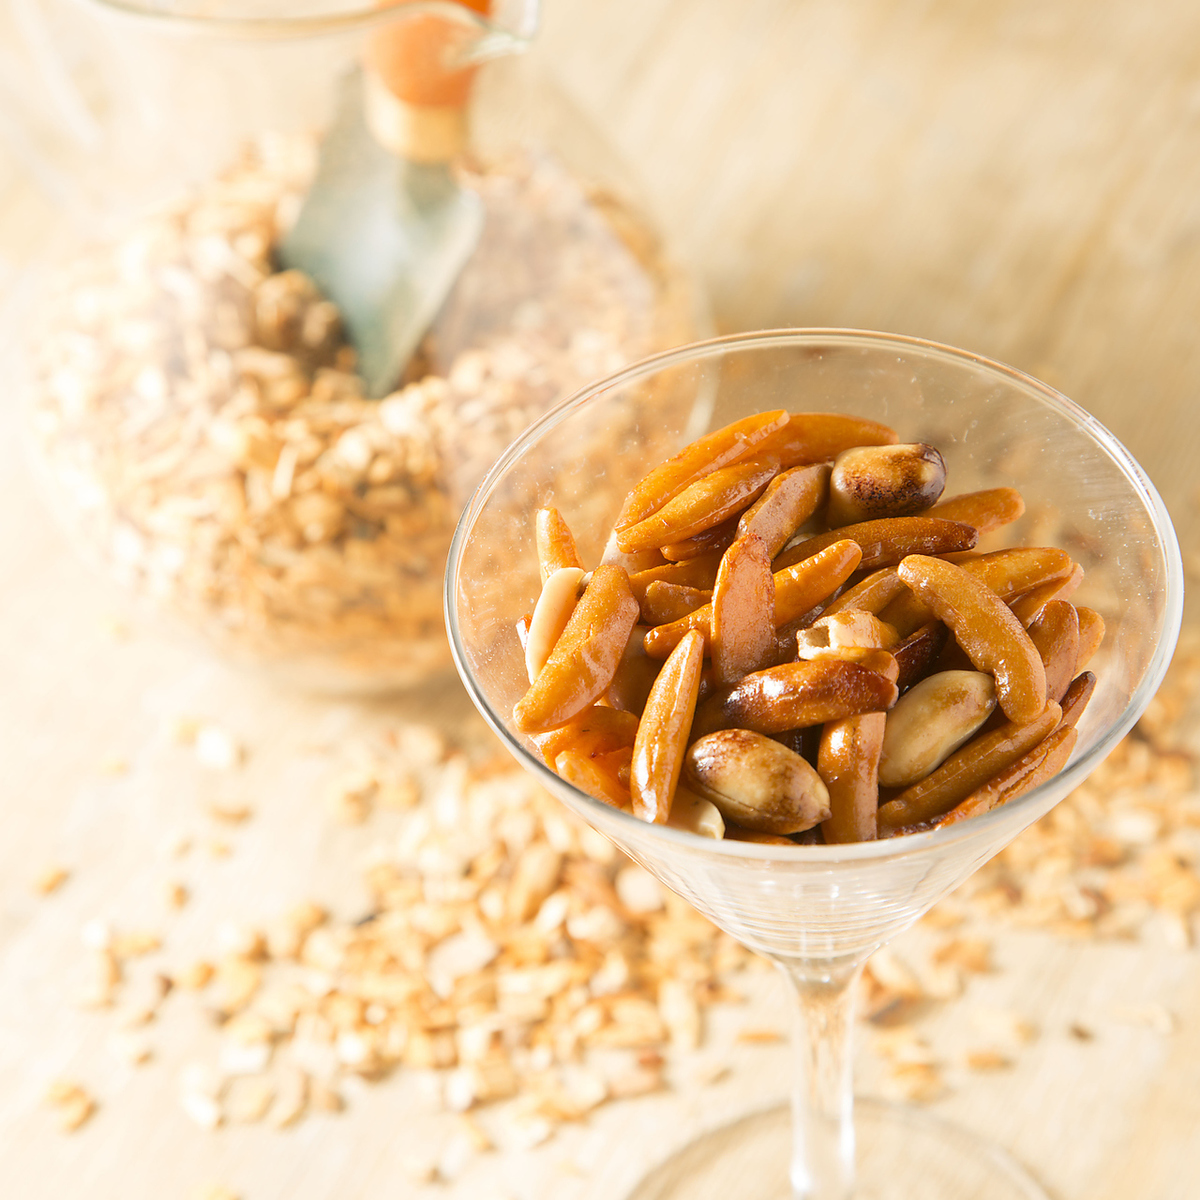 Combination of smoked nuts